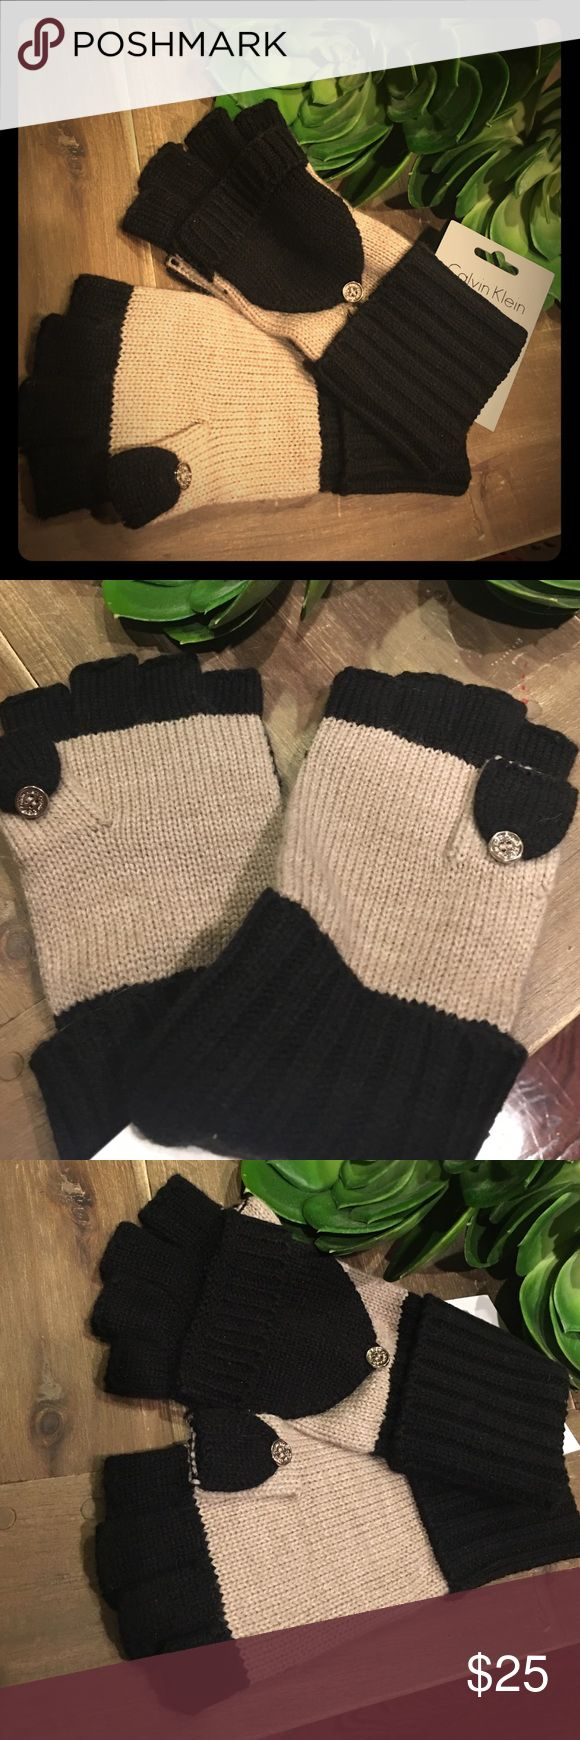 NWT Calvin Klein blk/beige gloves Featuring fold-over cover option or wear fingerless with a flip top cover   and a stylish cuffed wrist -Wear with your favorite coat and stay warm in style.Black and beige color block design 100% acrylic Machine washable Imported Calvin Klein Accessories Gloves & Mittens